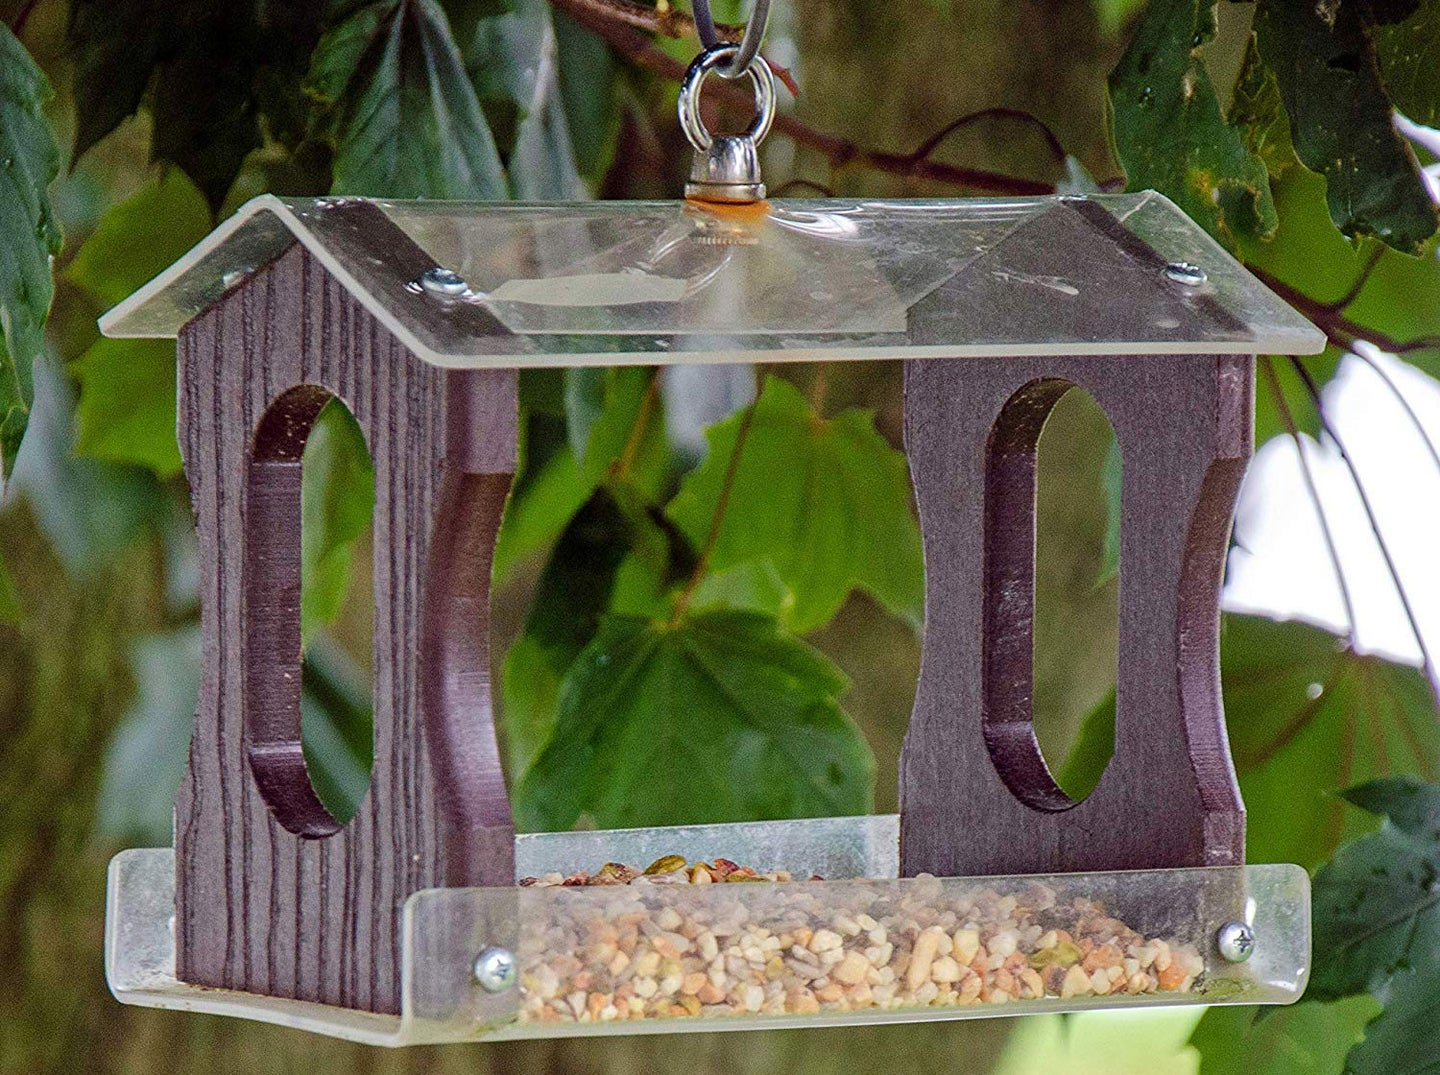 Attract more birds to your feeder